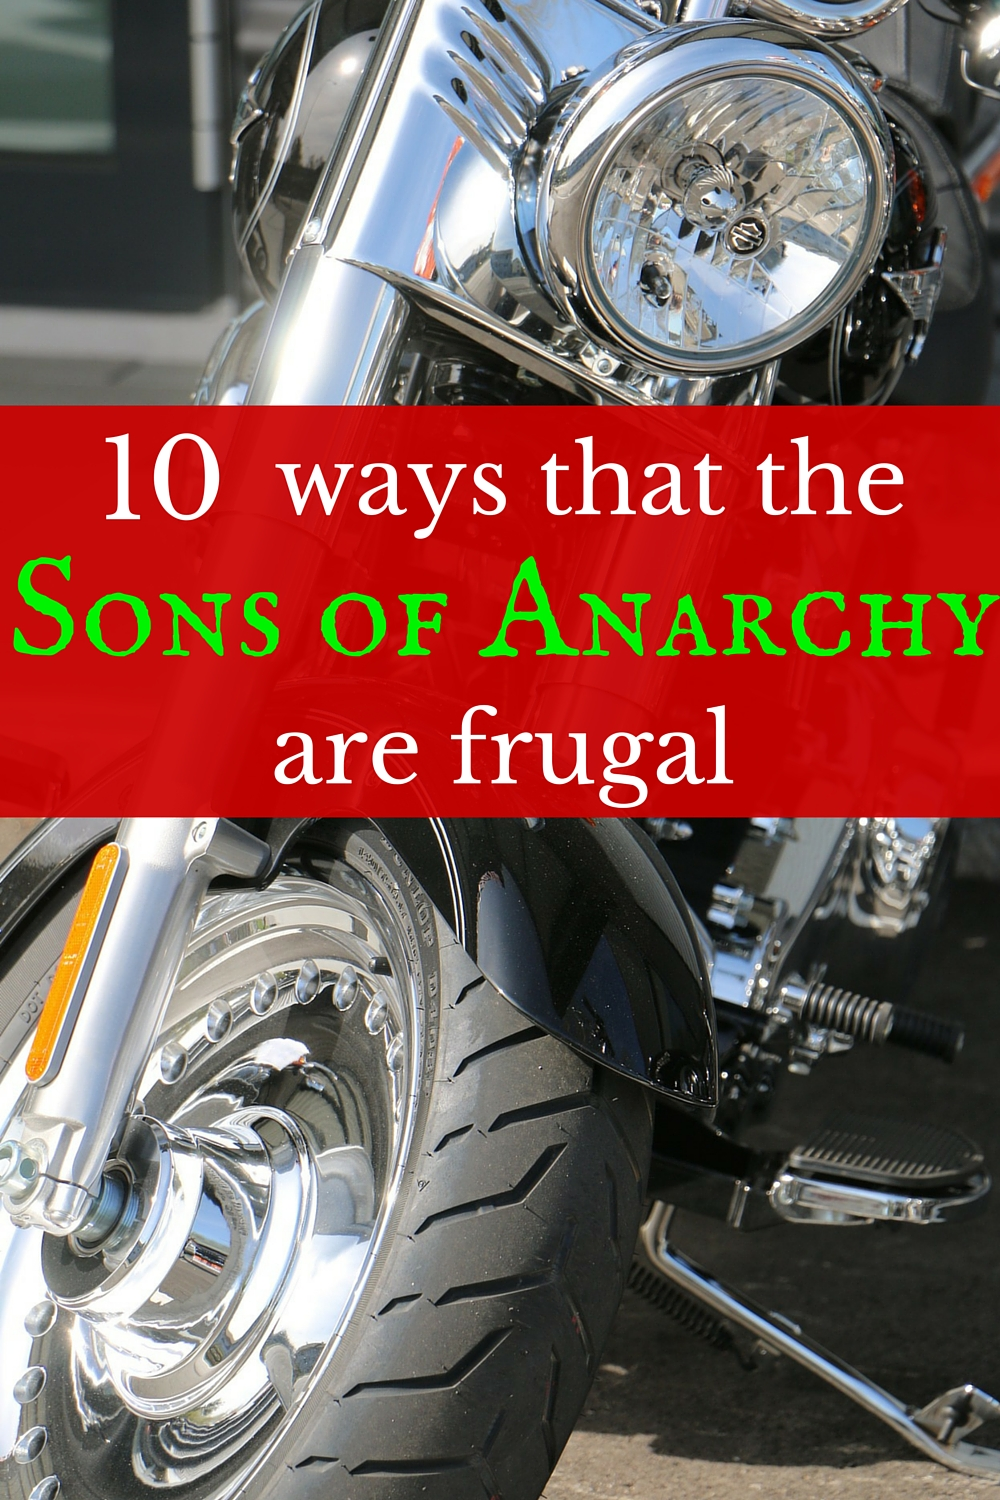 Money lessons from your favorite biker gang.